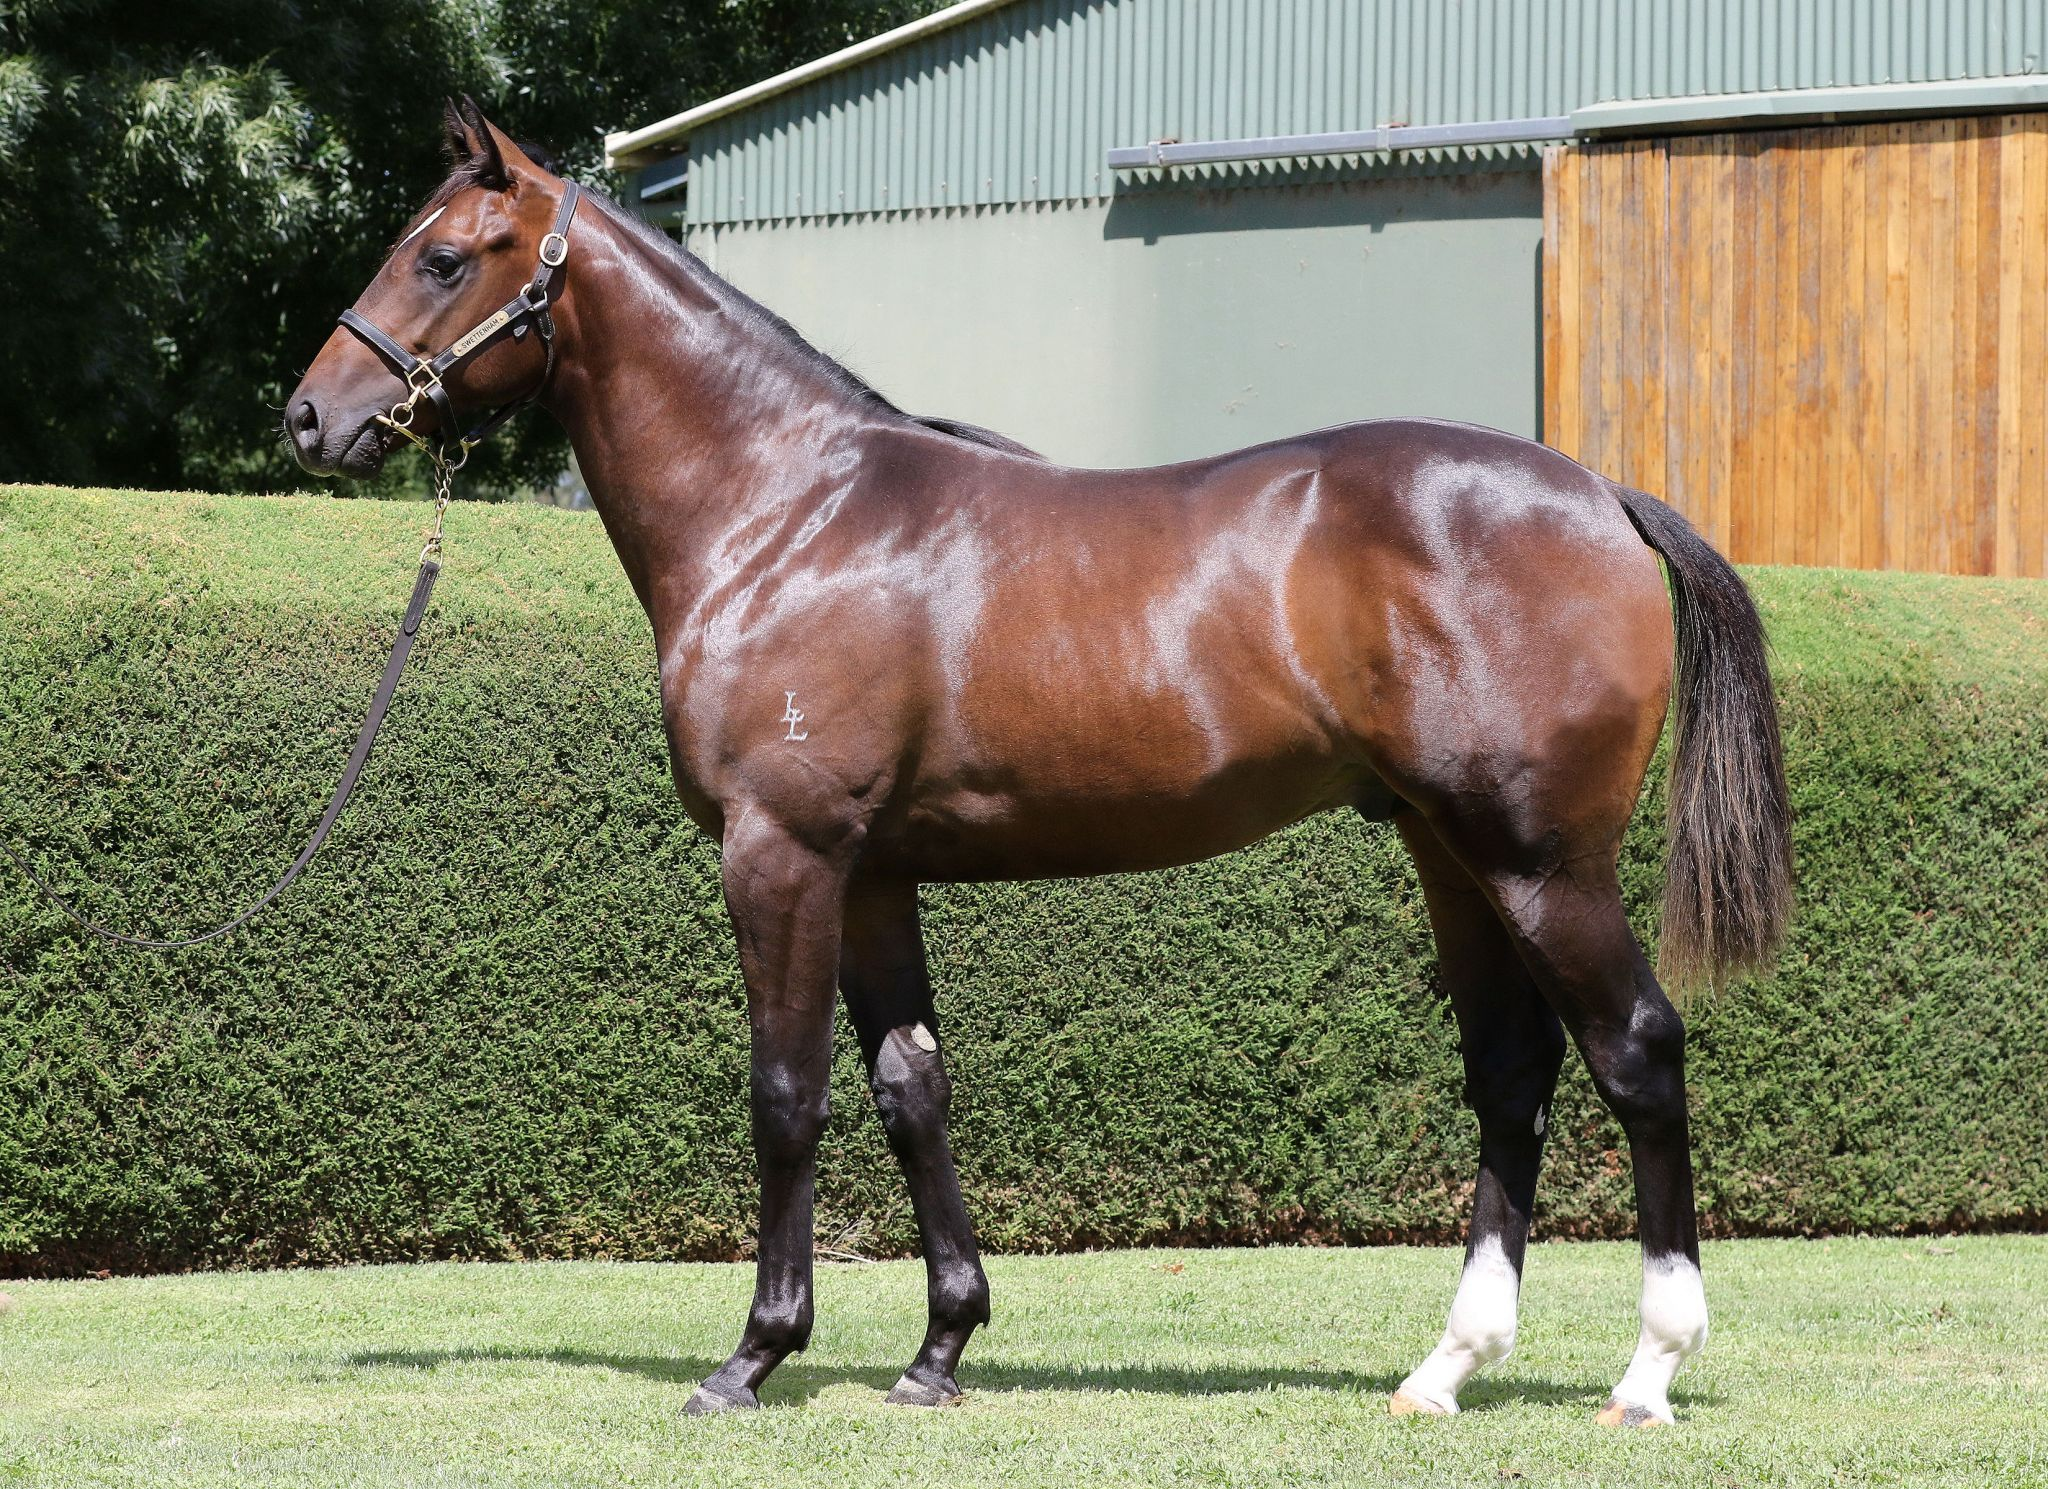 Hercules at 2017 Melbourne Premier Yearling Sale